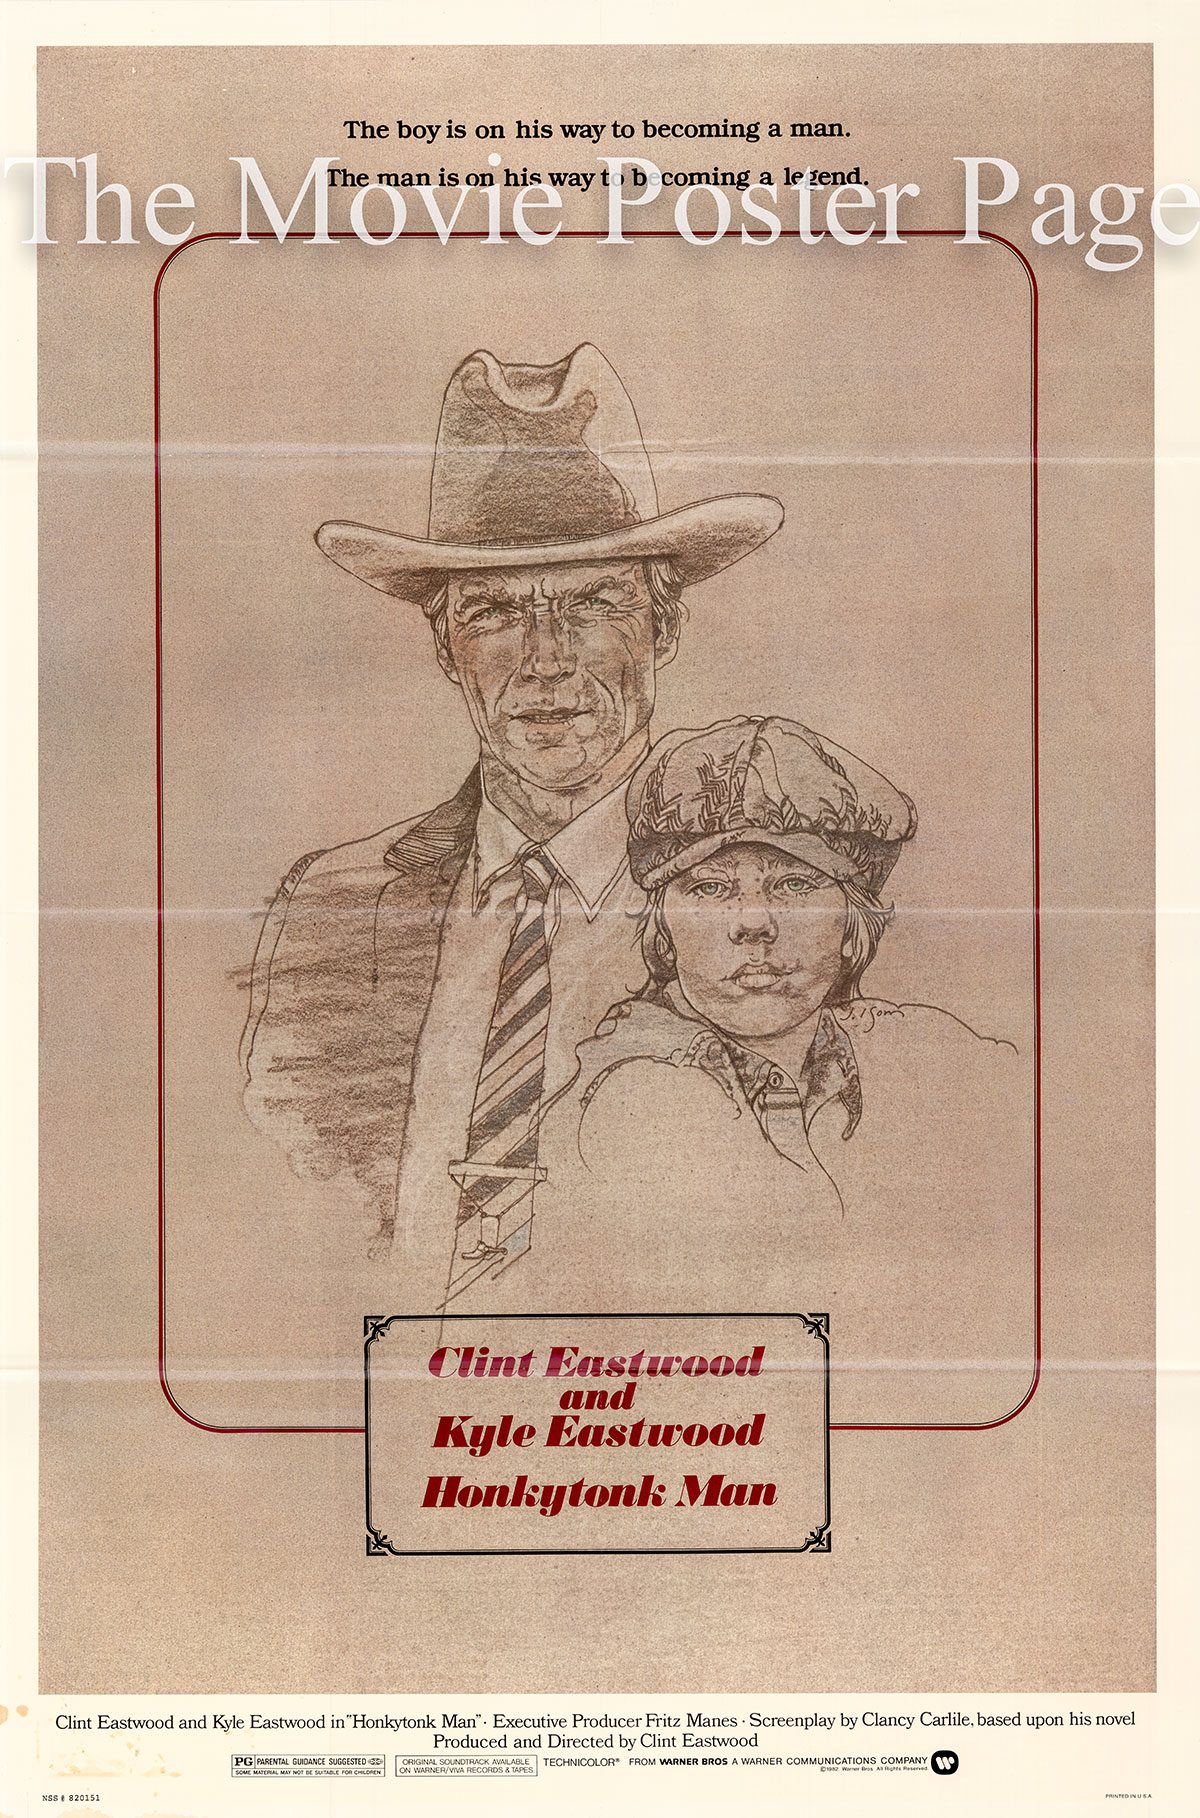 Pictured is a US one-sheet poster for the 1982 Clint Eastwood film Honkytonk Man starring Clint Eastwood.